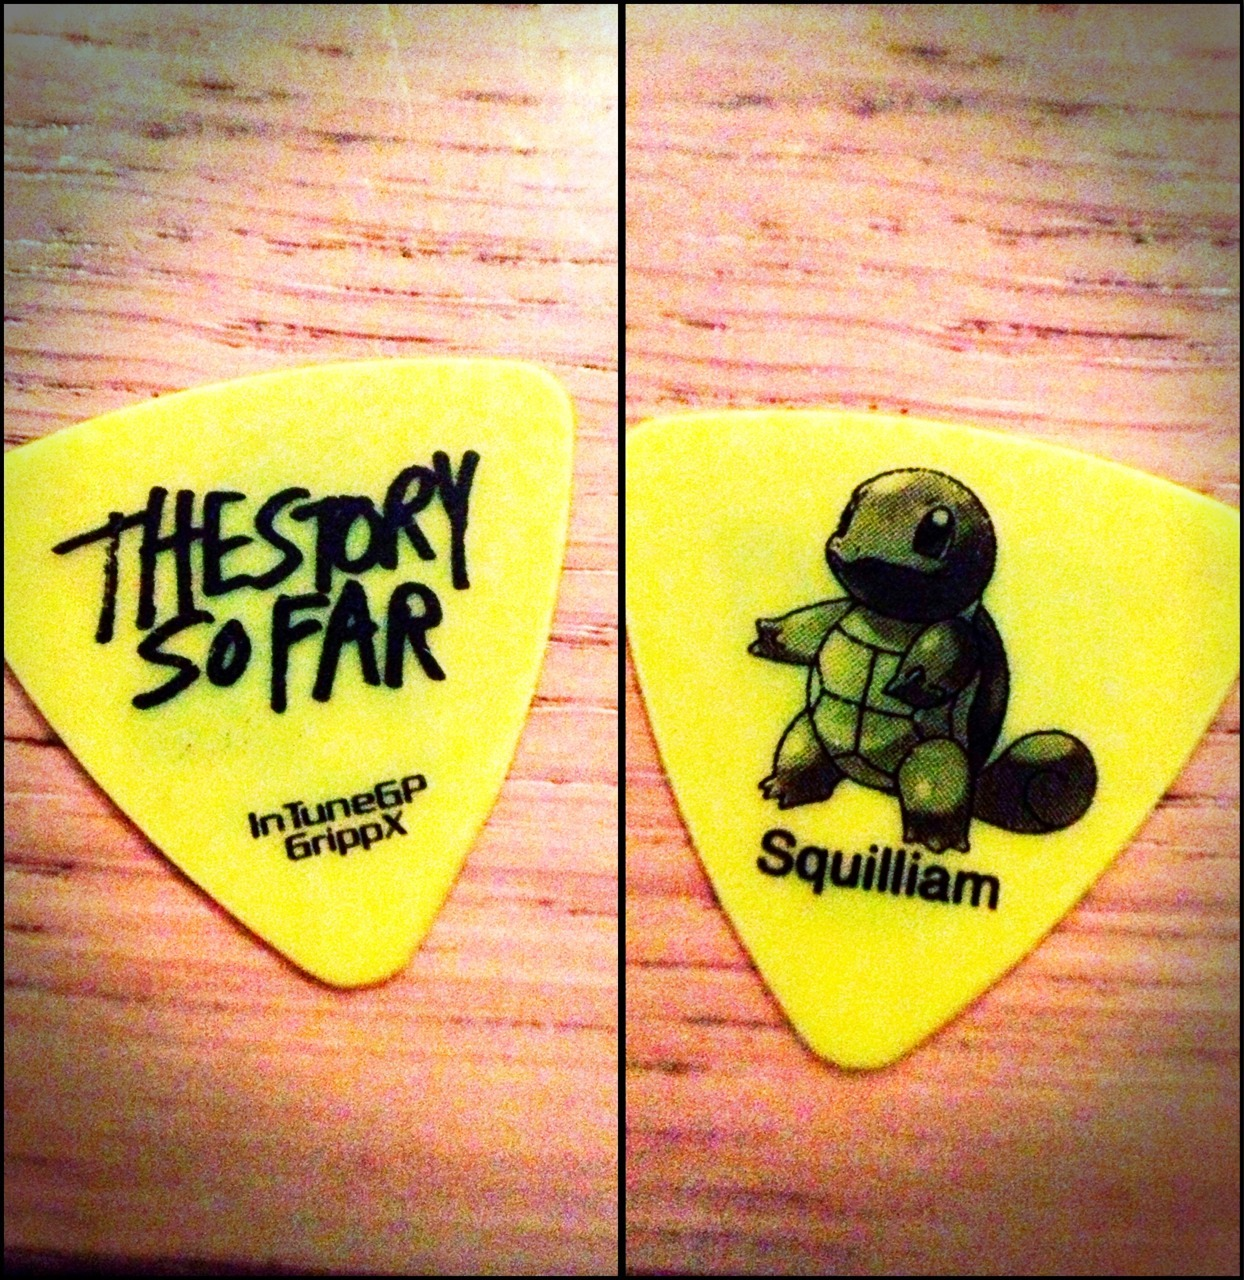 therightnotes:  Got this guitar pick at the the story so far show at Groezrock. pretty cool to have this:)